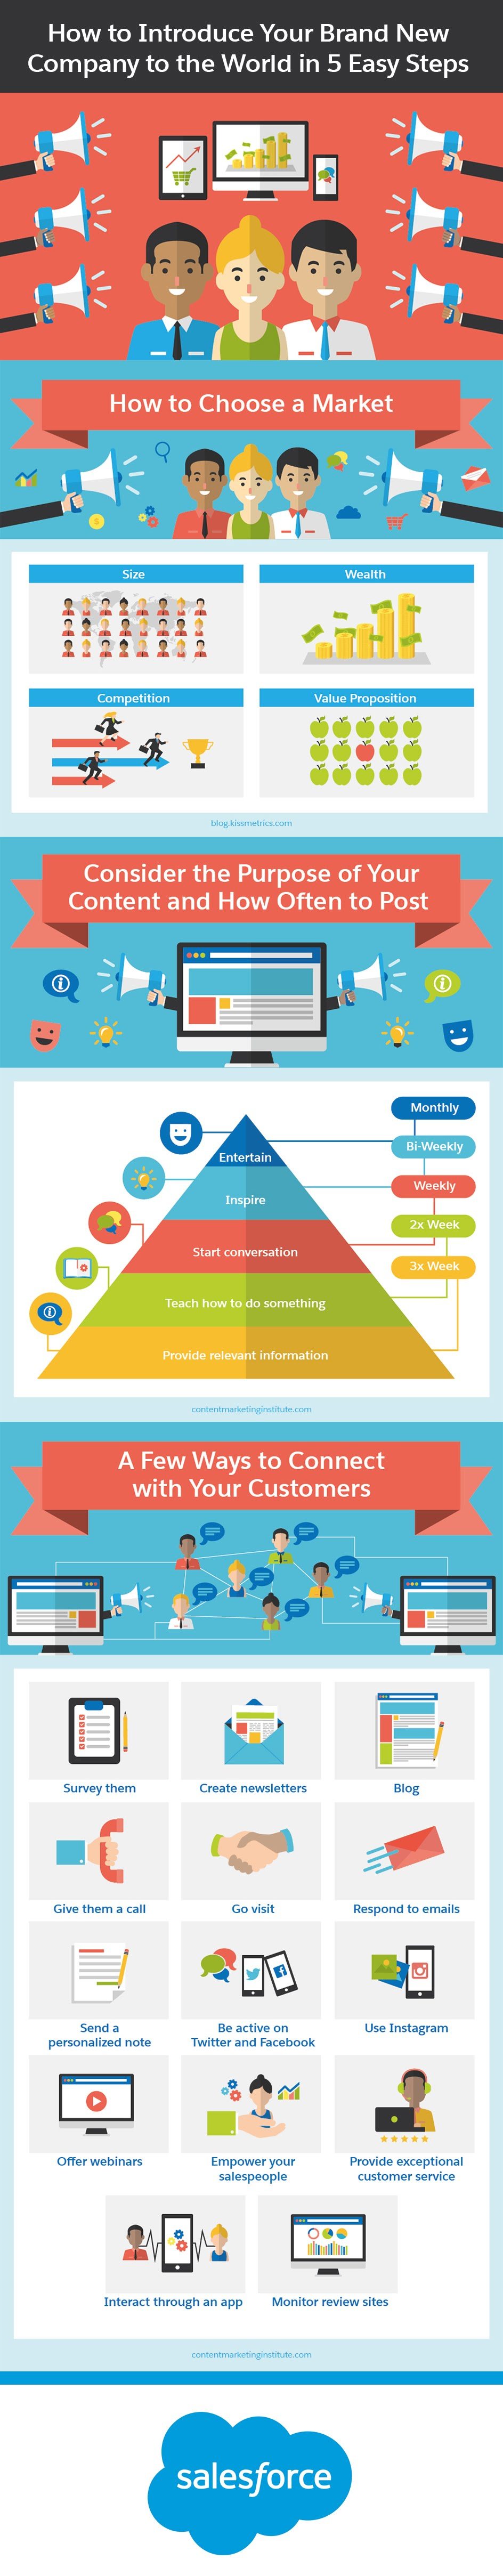 How to Introduce Your Brand New Company to the World in 5 Easy Steps - #infographic